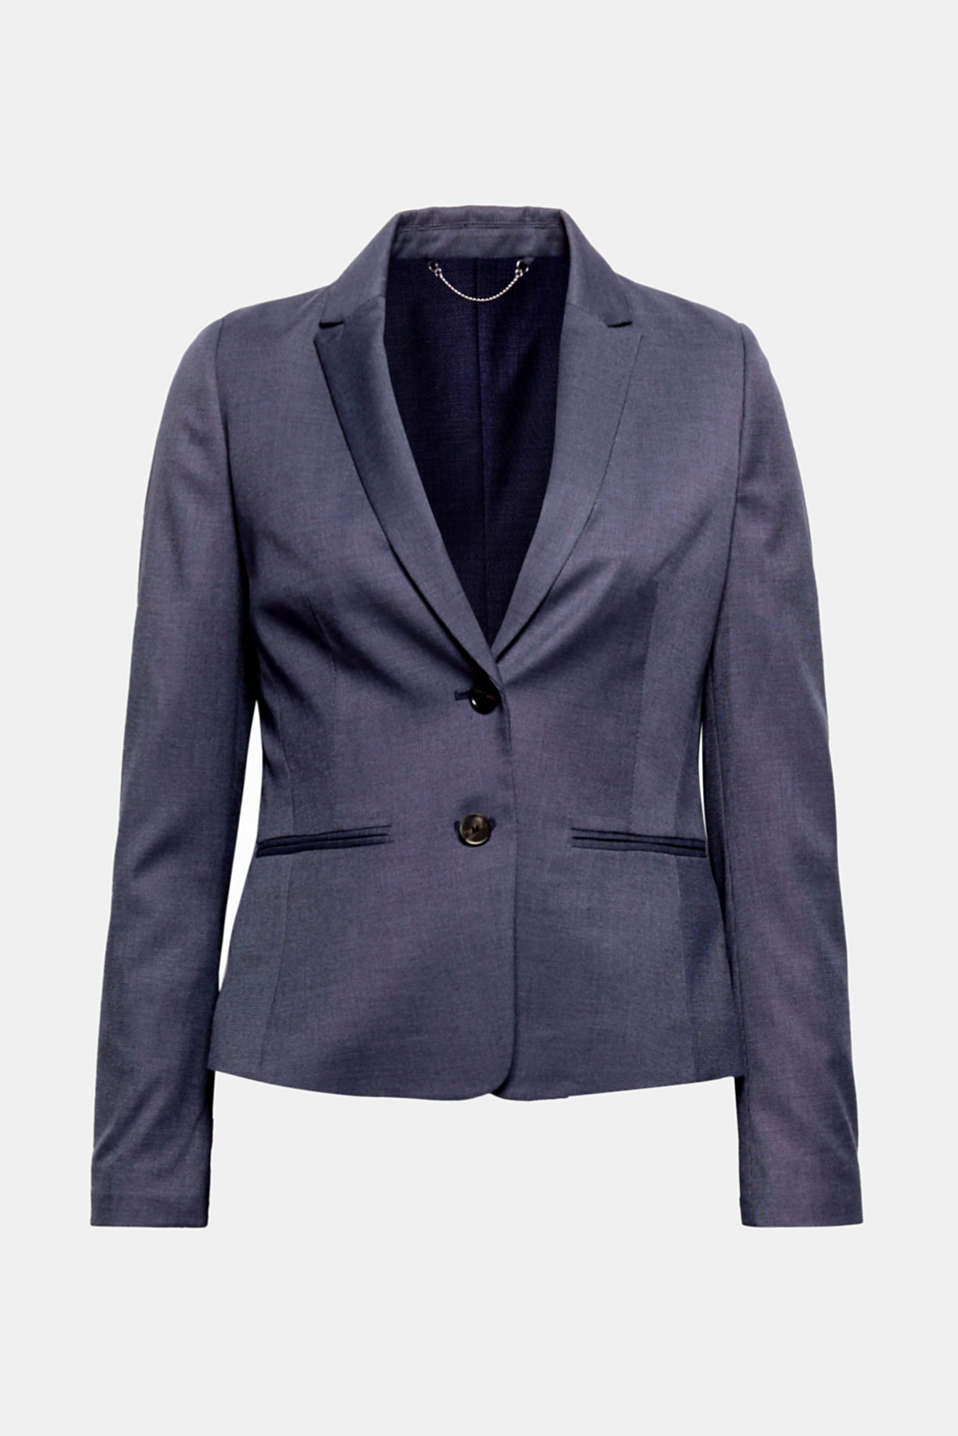 Business look in a fine, smooth two-tone fabric: This fitted blazer makes a complete outfit when paired with the right trousers!